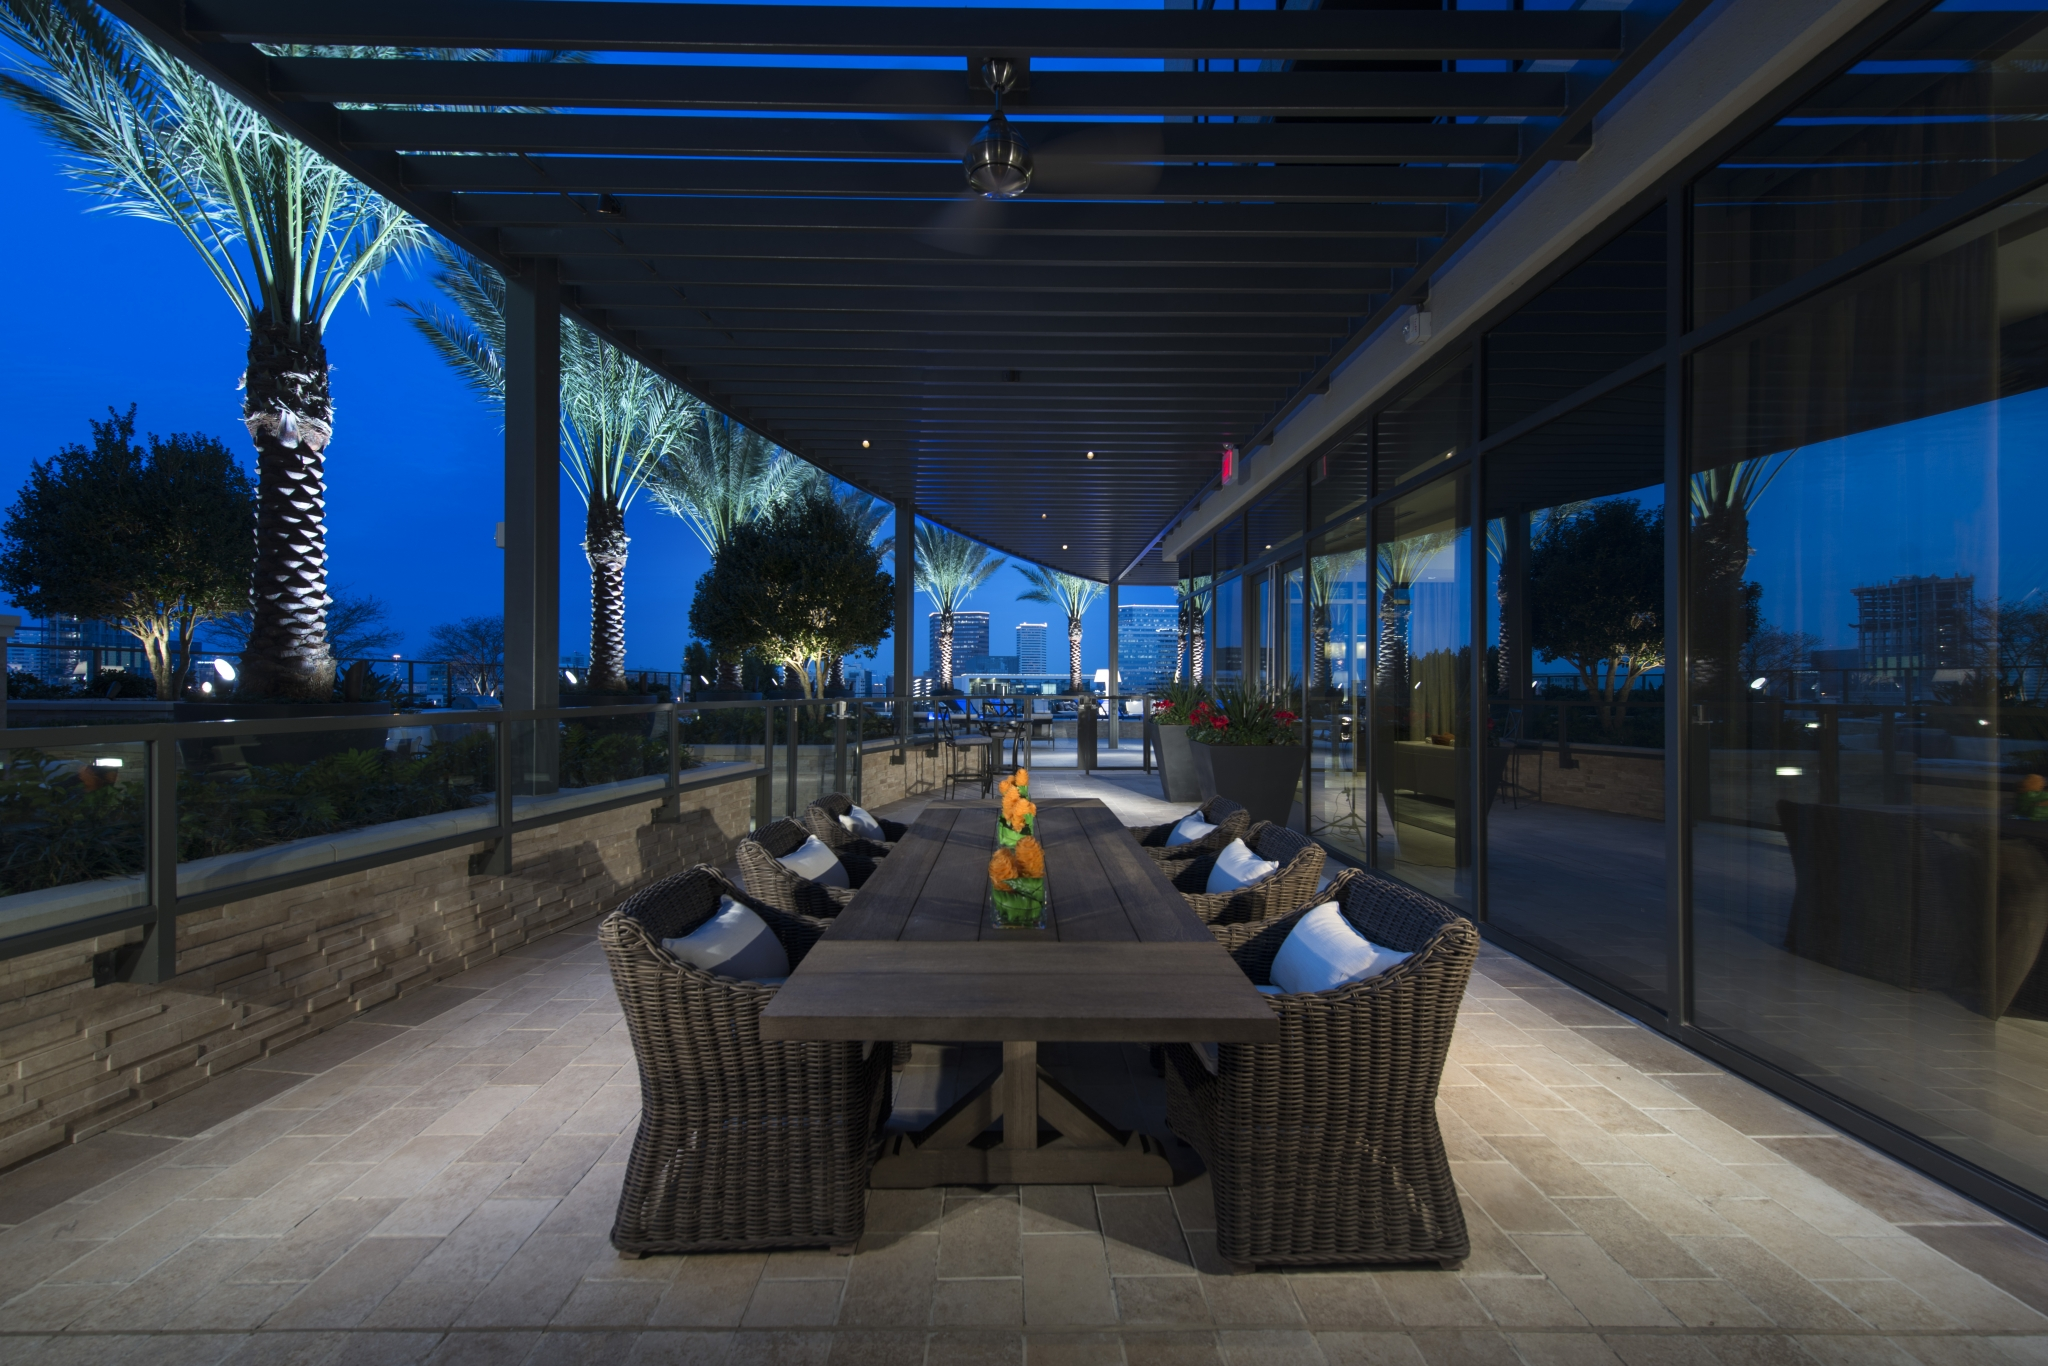 Pool-side private cabanas, luxury lounge seating at Hanover Post Oak